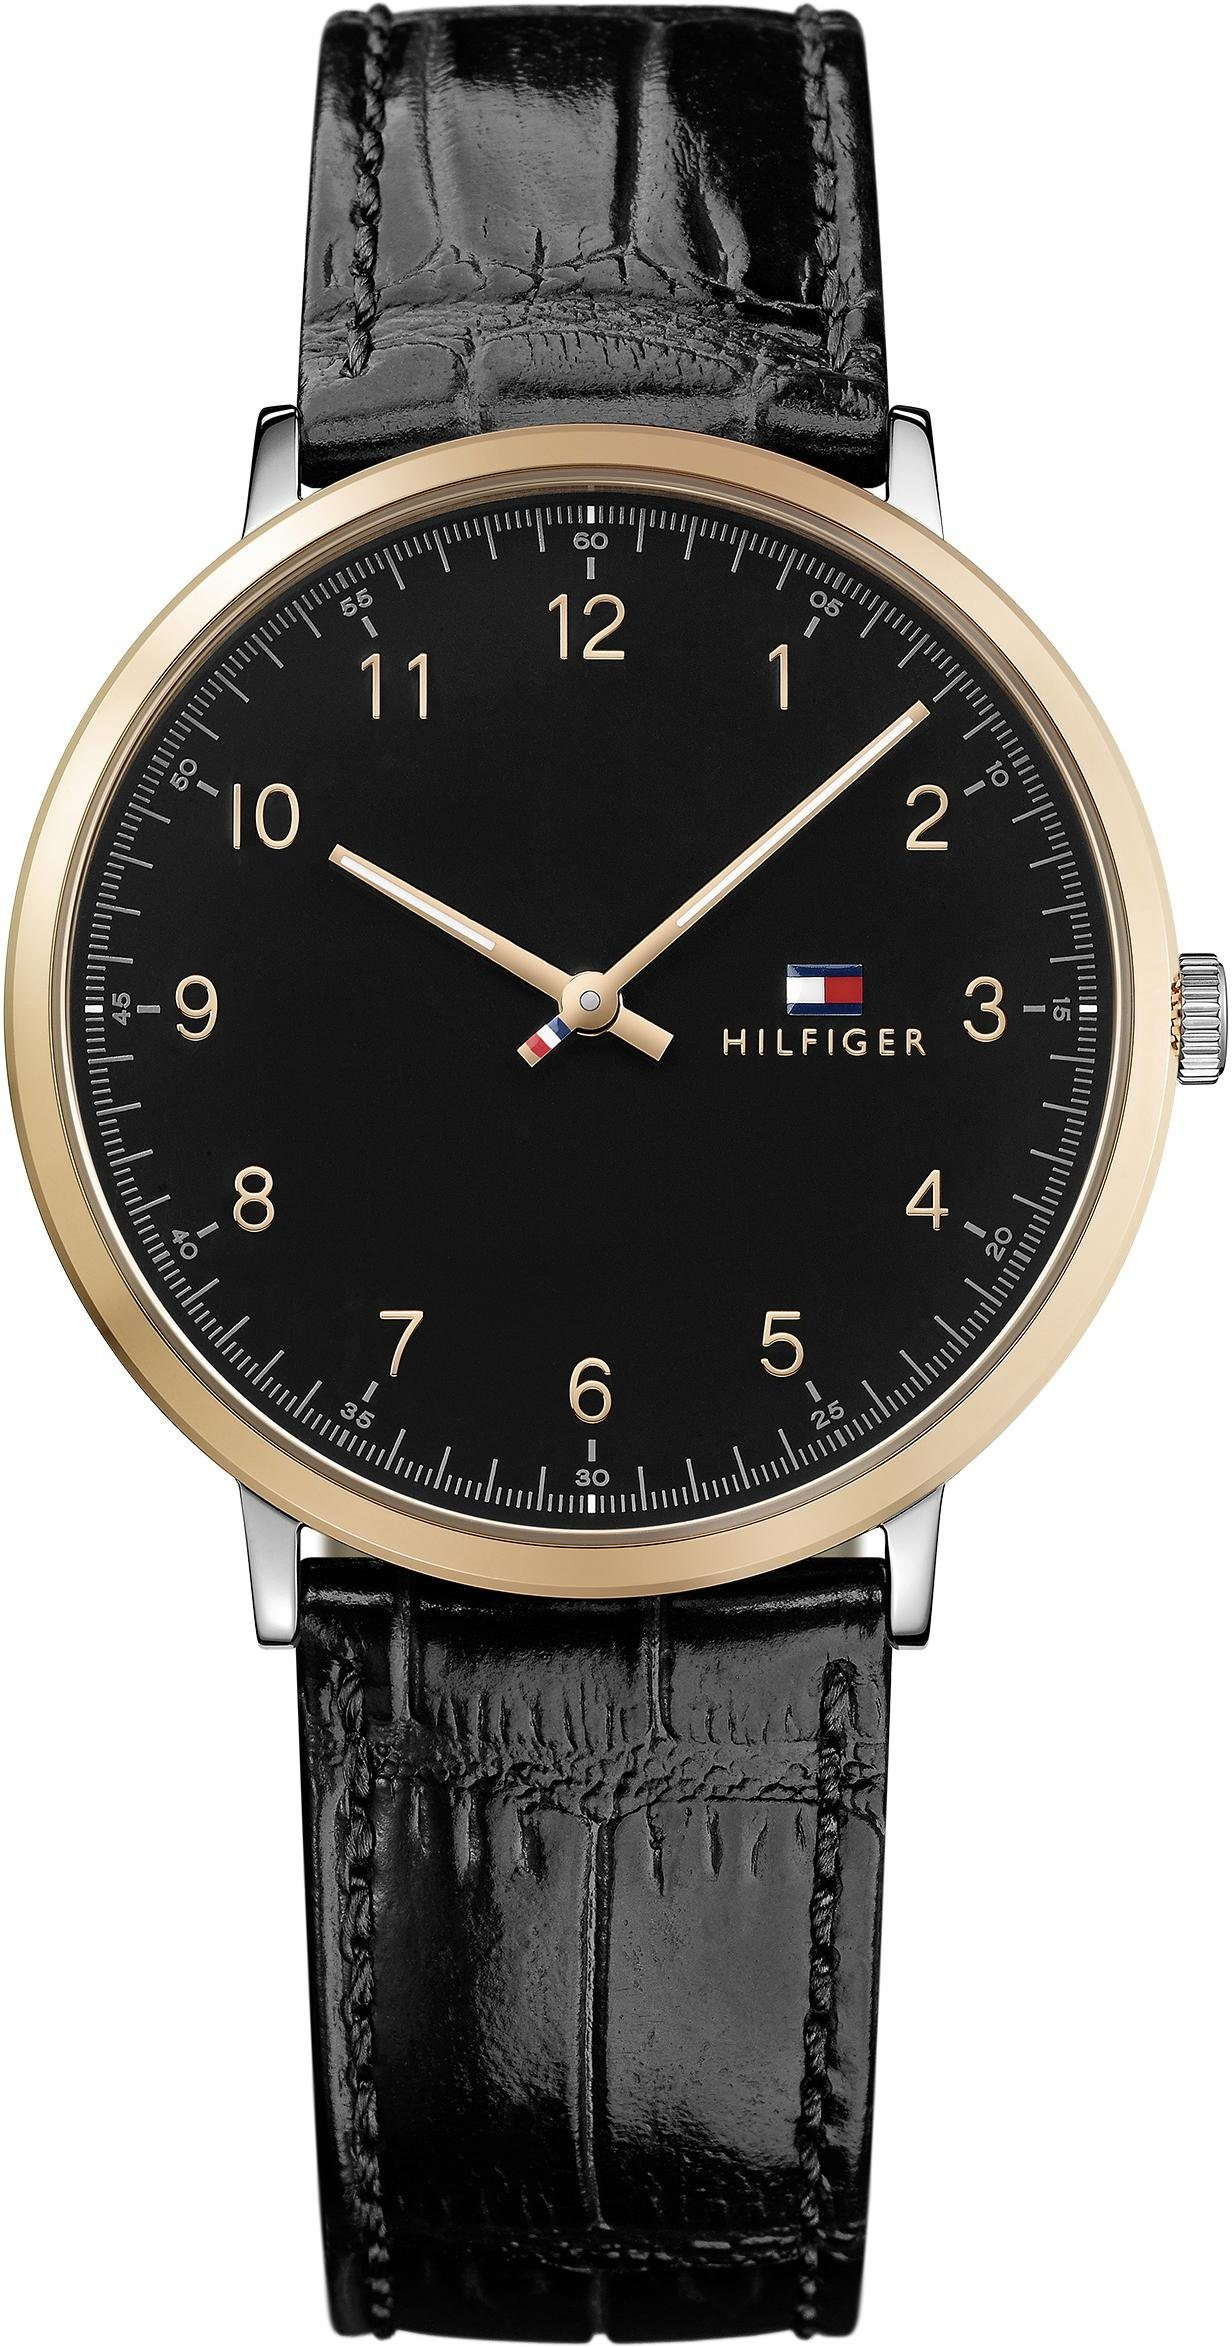 Tommy Hilfiger Quarzuhr »Sophisticated Sport, 1791339«